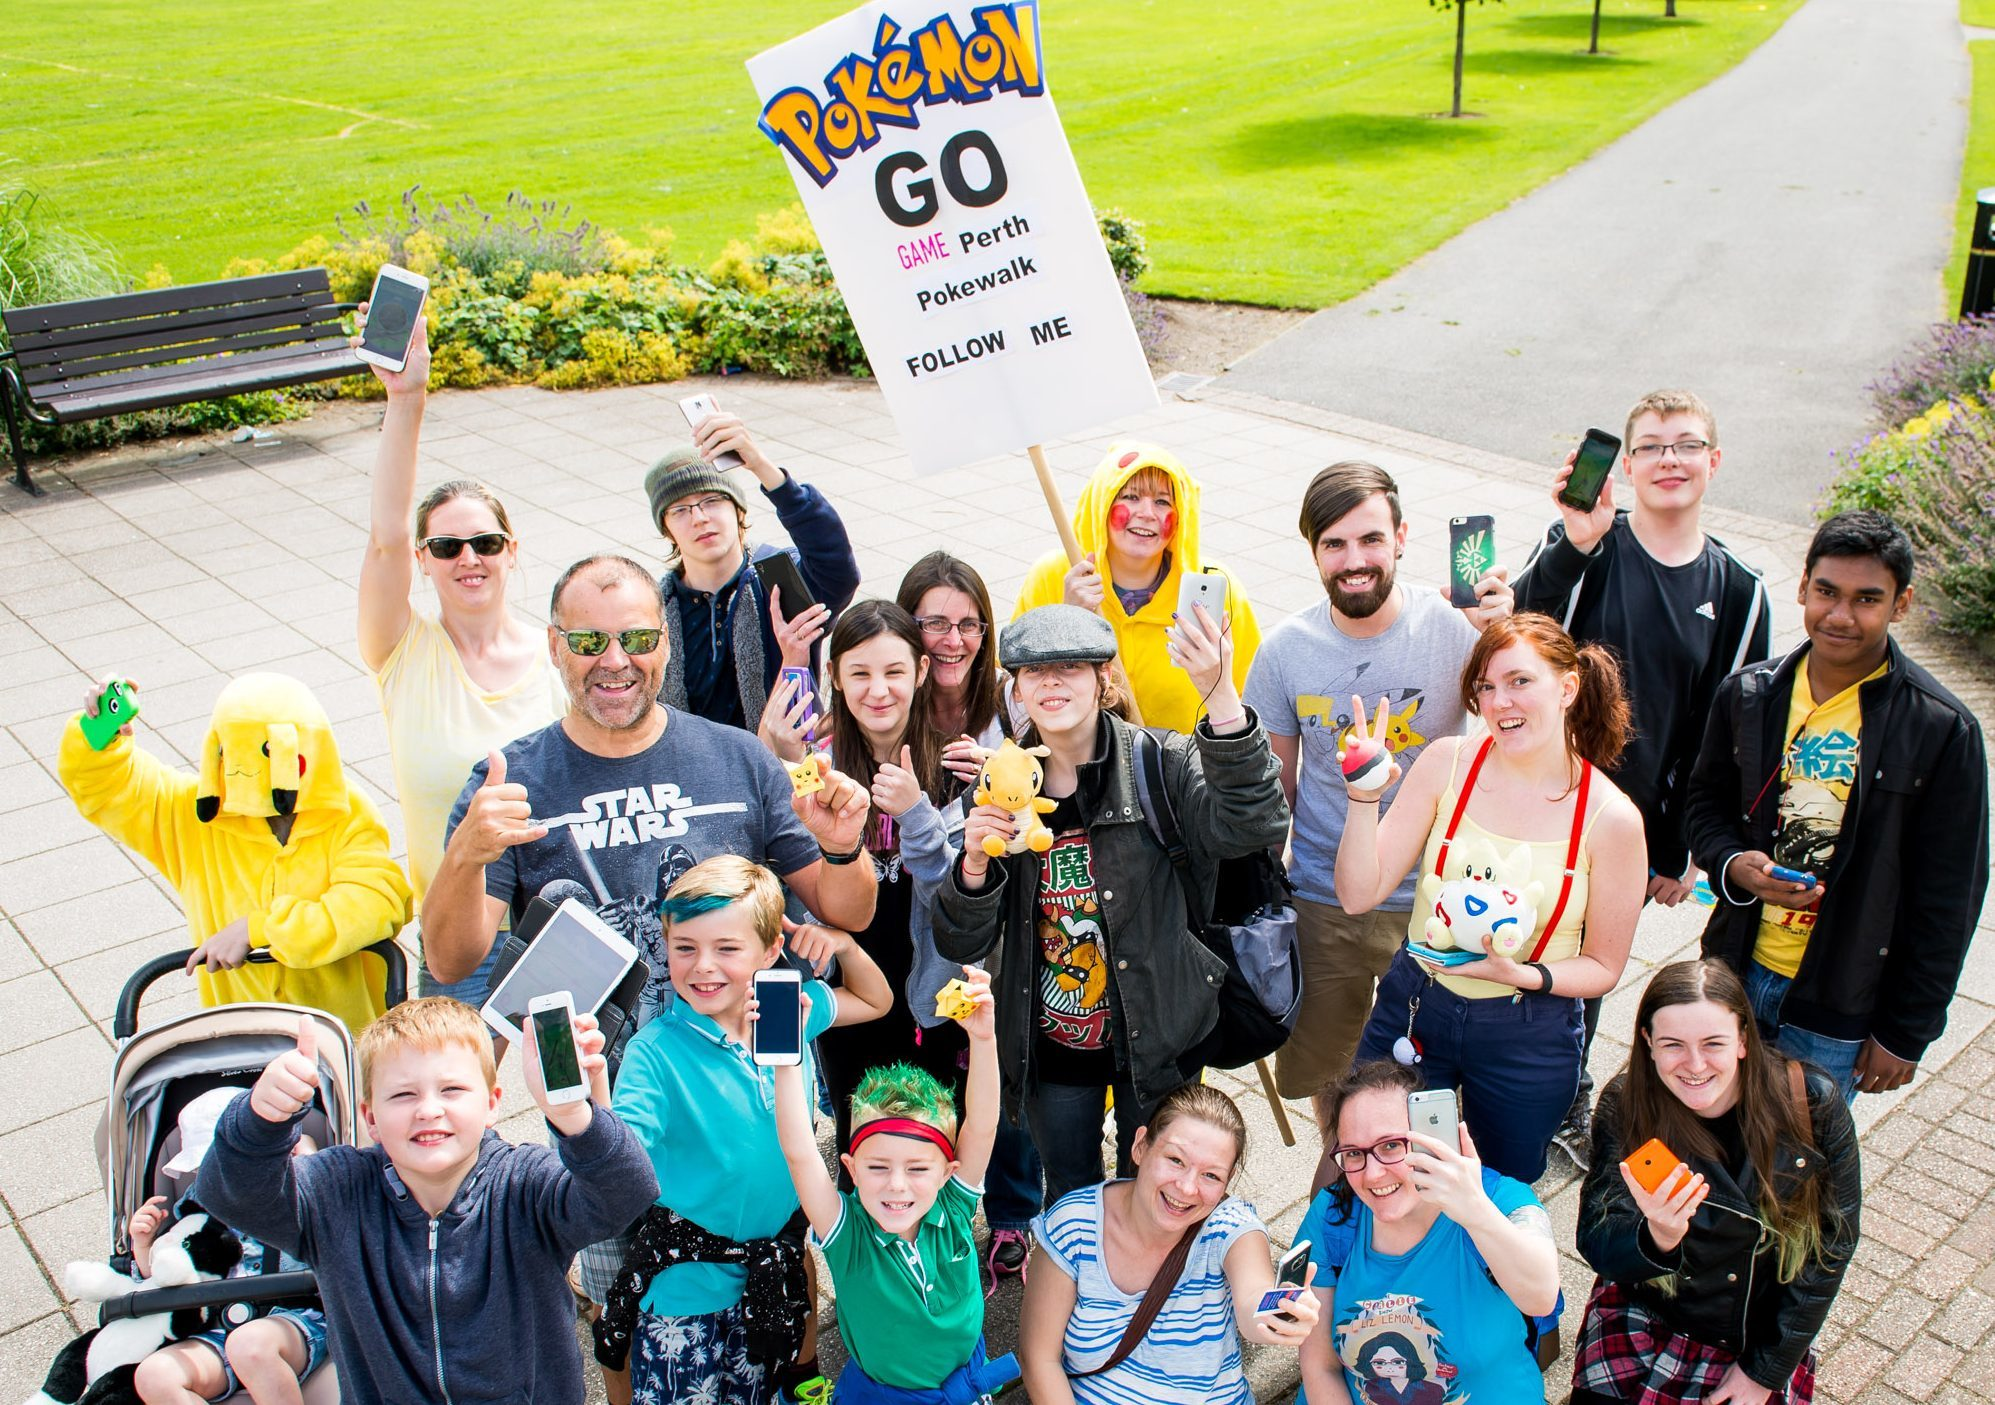 Gotta catch them all...participants in the Perth Pokemon Go walk.